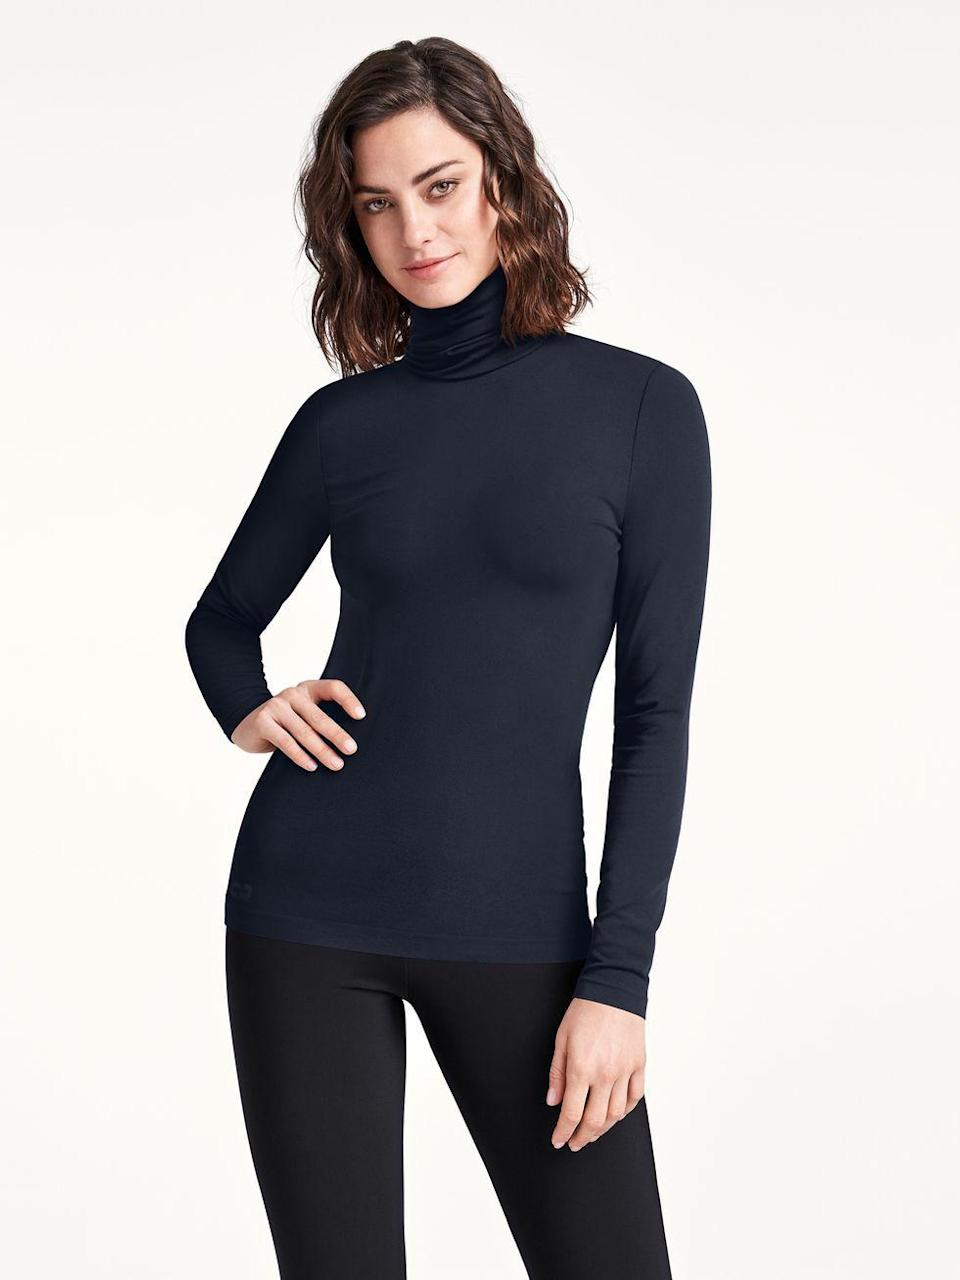 """<p>If there's one thing we're familiar with during the pandemic, it's working from home in our most comfortable styles - that means anything with stretch. </p><p>Wolford, the go-to brand for basics including shapewear and leggings, long before Kim K came along with SKIMS, is now even more desirable thanks to its commitment to sustainability. </p><p>It's the first and only company in apparel and textiles to hold two certificates stating they are Cradle to Cradle Certified™ at gold level. (That means it's legit.) Its recently launched Aurora collection, available via its website and <a href=""""https://www.net-a-porter.com/en-gb/shop/designer/wolford"""" rel=""""nofollow noopener"""" target=""""_blank"""" data-ylk=""""slk:Net-a-Porter"""" class=""""link rapid-noclick-resp"""">Net-a-Porter</a>, is made of biodegradable fabrics. But, that being said, the styles are also so timeless and well-made that you'll be wearing them for decades. </p><p><a class=""""link rapid-noclick-resp"""" href=""""https://www.net-a-porter.com/en-gb/shop/designer/wolford"""" rel=""""nofollow noopener"""" target=""""_blank"""" data-ylk=""""slk:SHOP WOLFORD NOW"""">SHOP WOLFORD NOW</a></p>"""